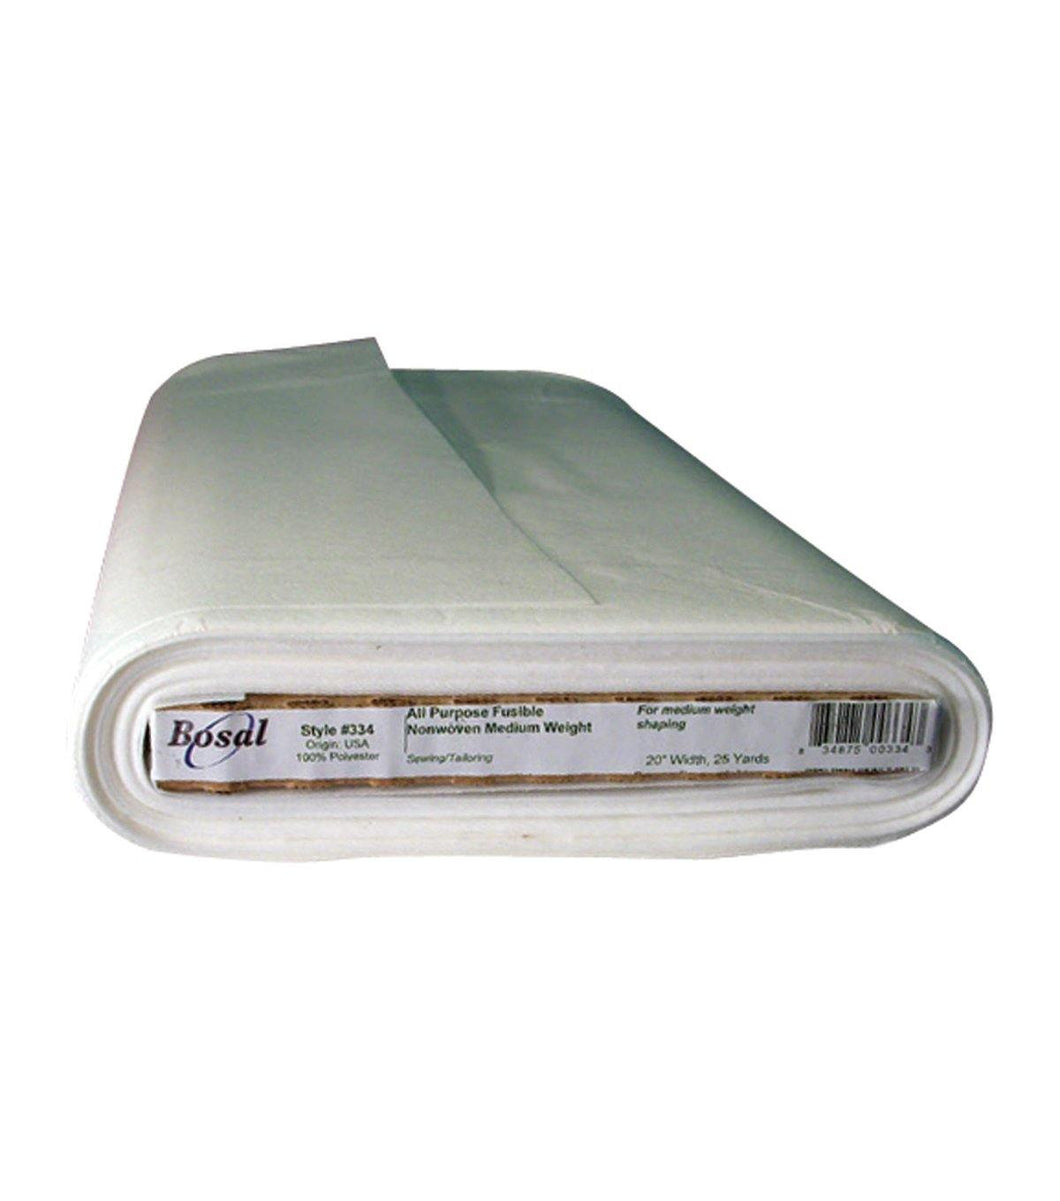 Bosal 316 Medium Weight Non-woven Fusible Interfacing BY THE YARD - Dreaming of the Sea Fabrics